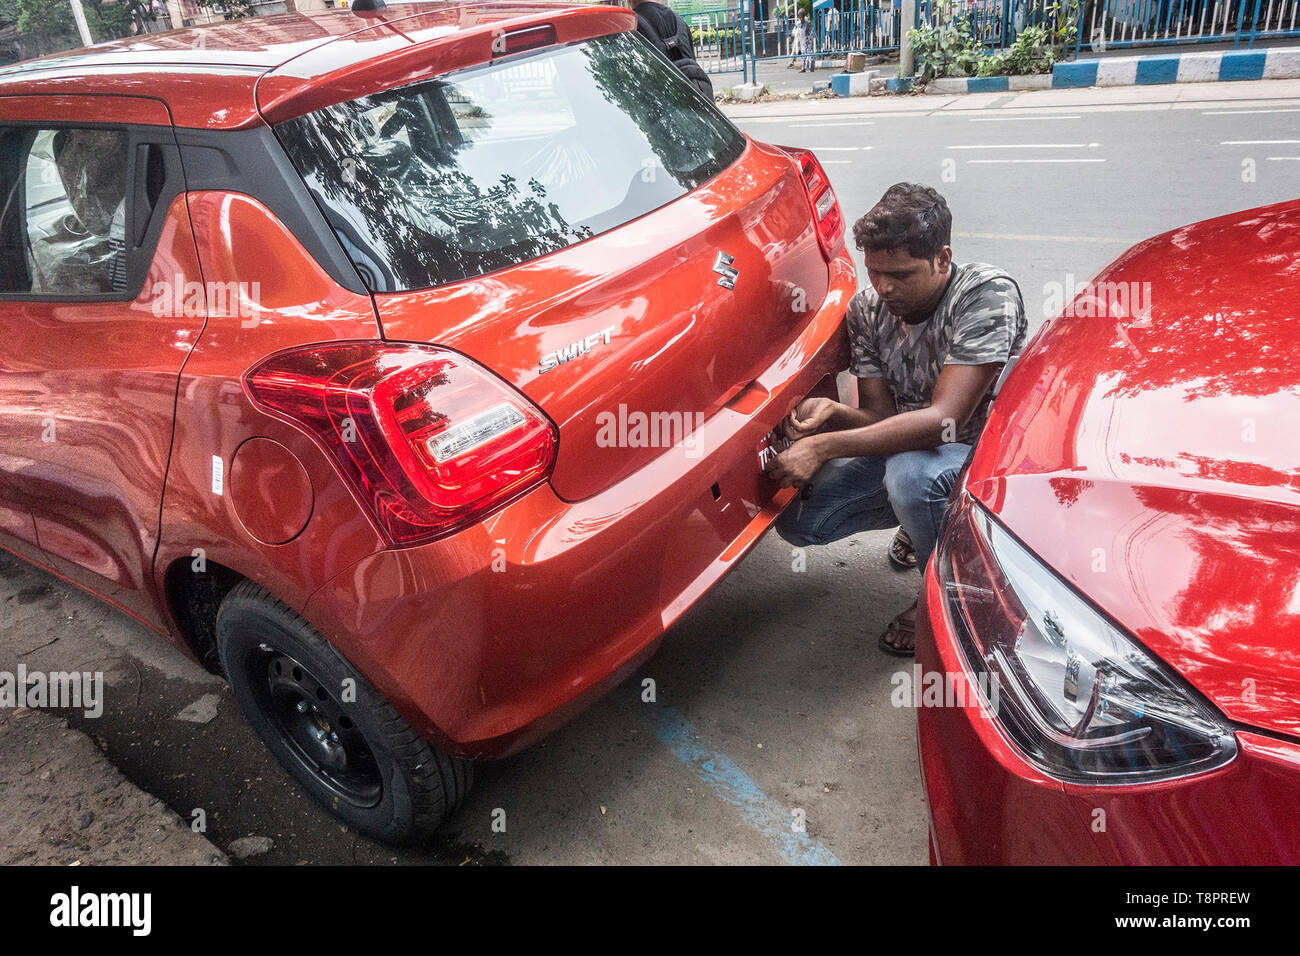 Kolkata, India. 14th May, 2019. An Indian worker sets number plate to a new car in?Kolkata, India, May 14, 2019. India's automobile sector continued its bumpy ride for the fifth consecutive month in April with 20 percent drop in car sales and 16 percent drop in two-wheeler sales, compared with the same period last year. The drastic drop in sales was attributed to several factors including liquidity squeeze in the market, rising fuel cost, interest rates and insurance costs that has dampened consumer sentiment. Credit: Tumpa Mondal/Xinhua/Alamy Live News Stock Photo